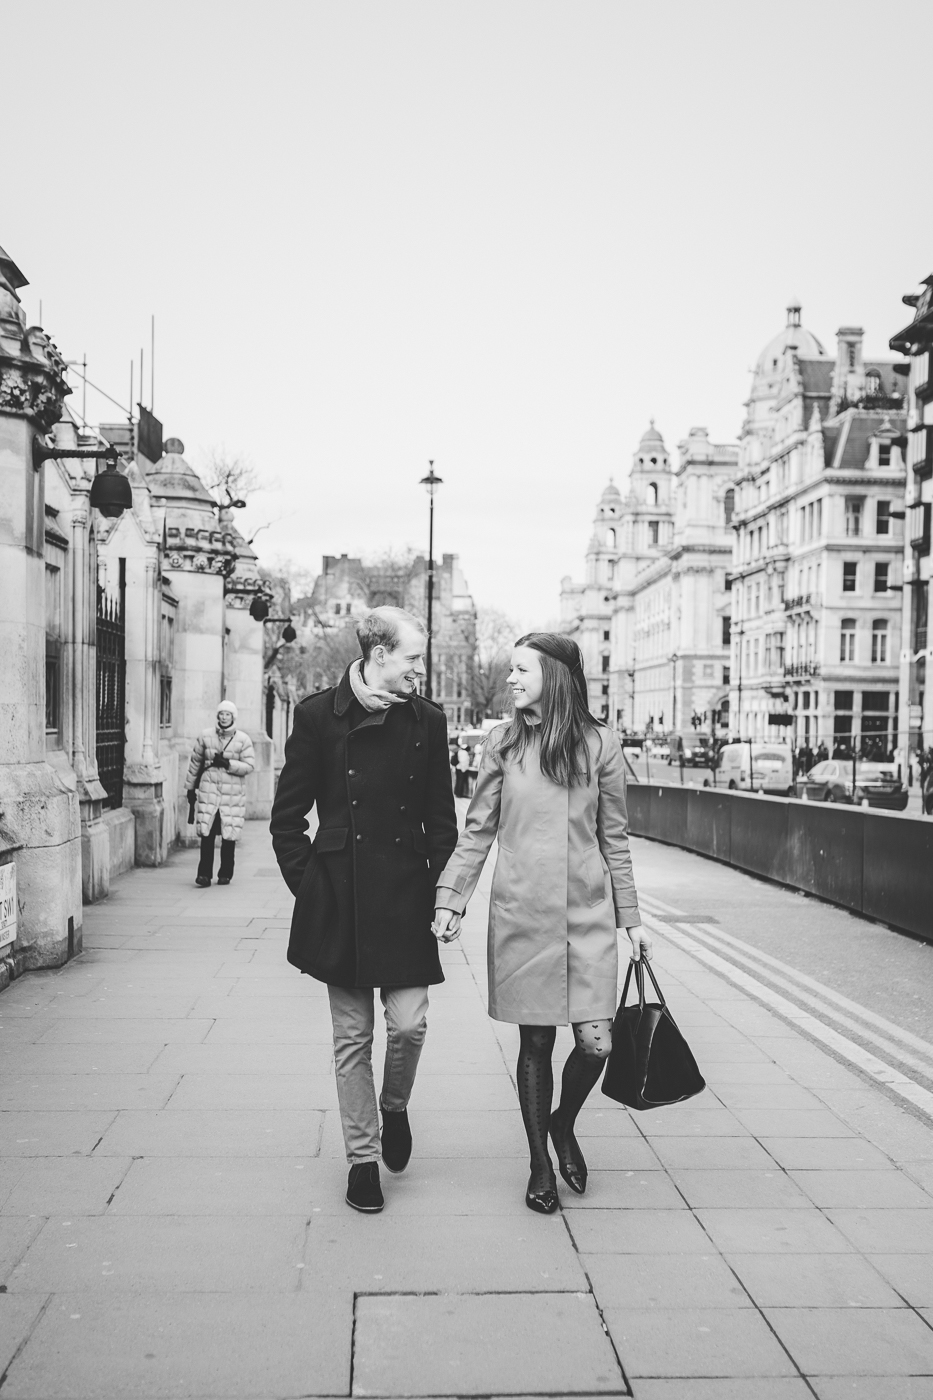 london-wedding-photographer-kate-gray-7.jpg